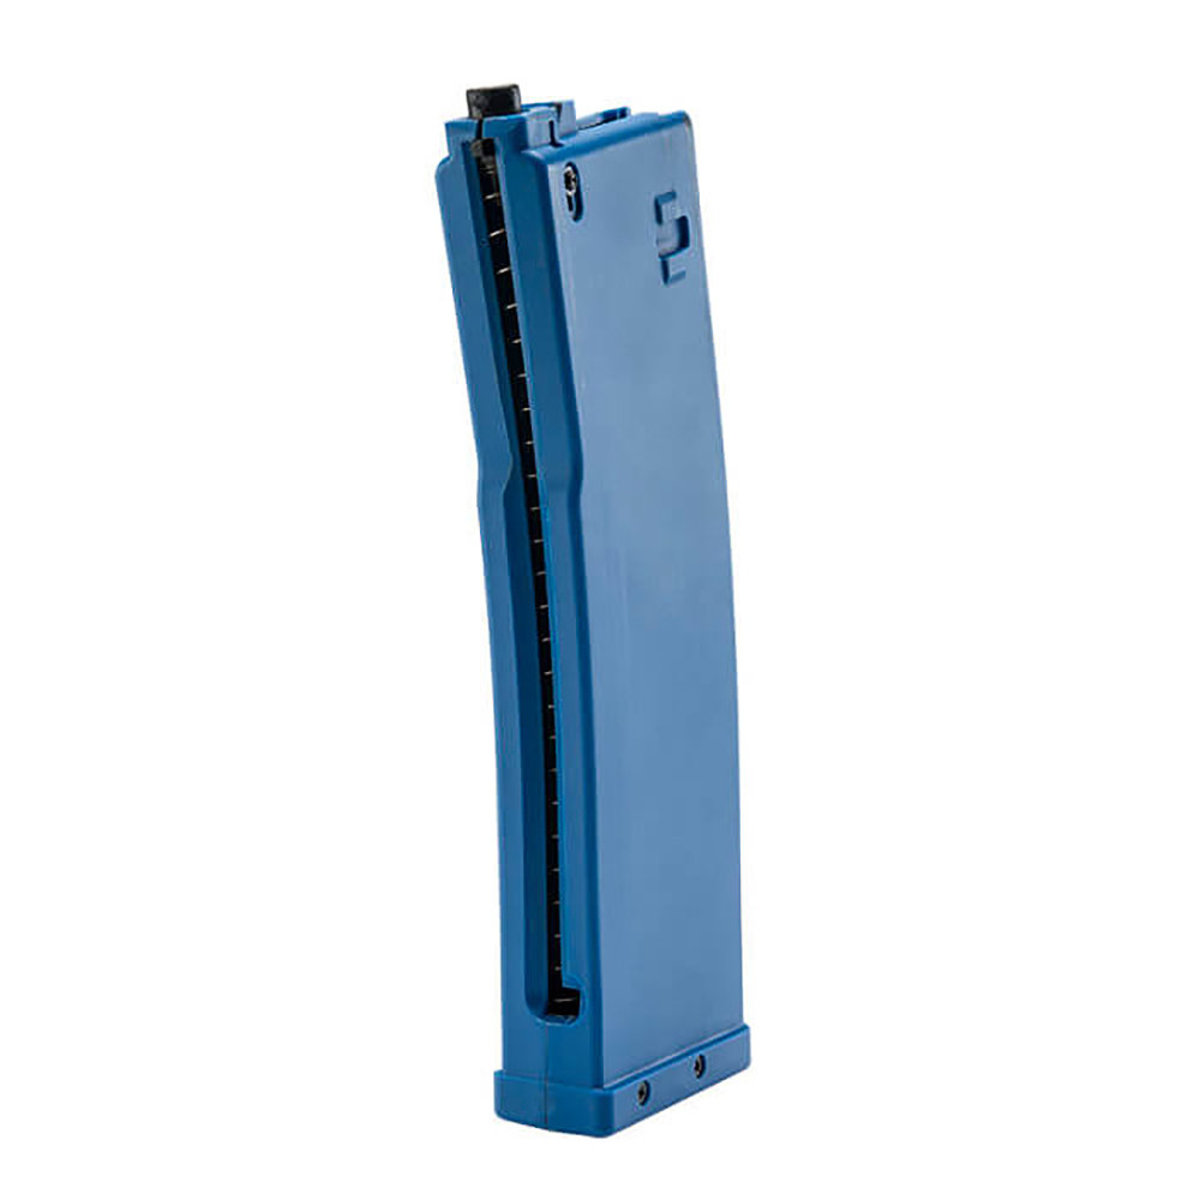 View larger image of Umarex T4E TM-4 & HK416 .43 Caliber Paintball Gun Magazine